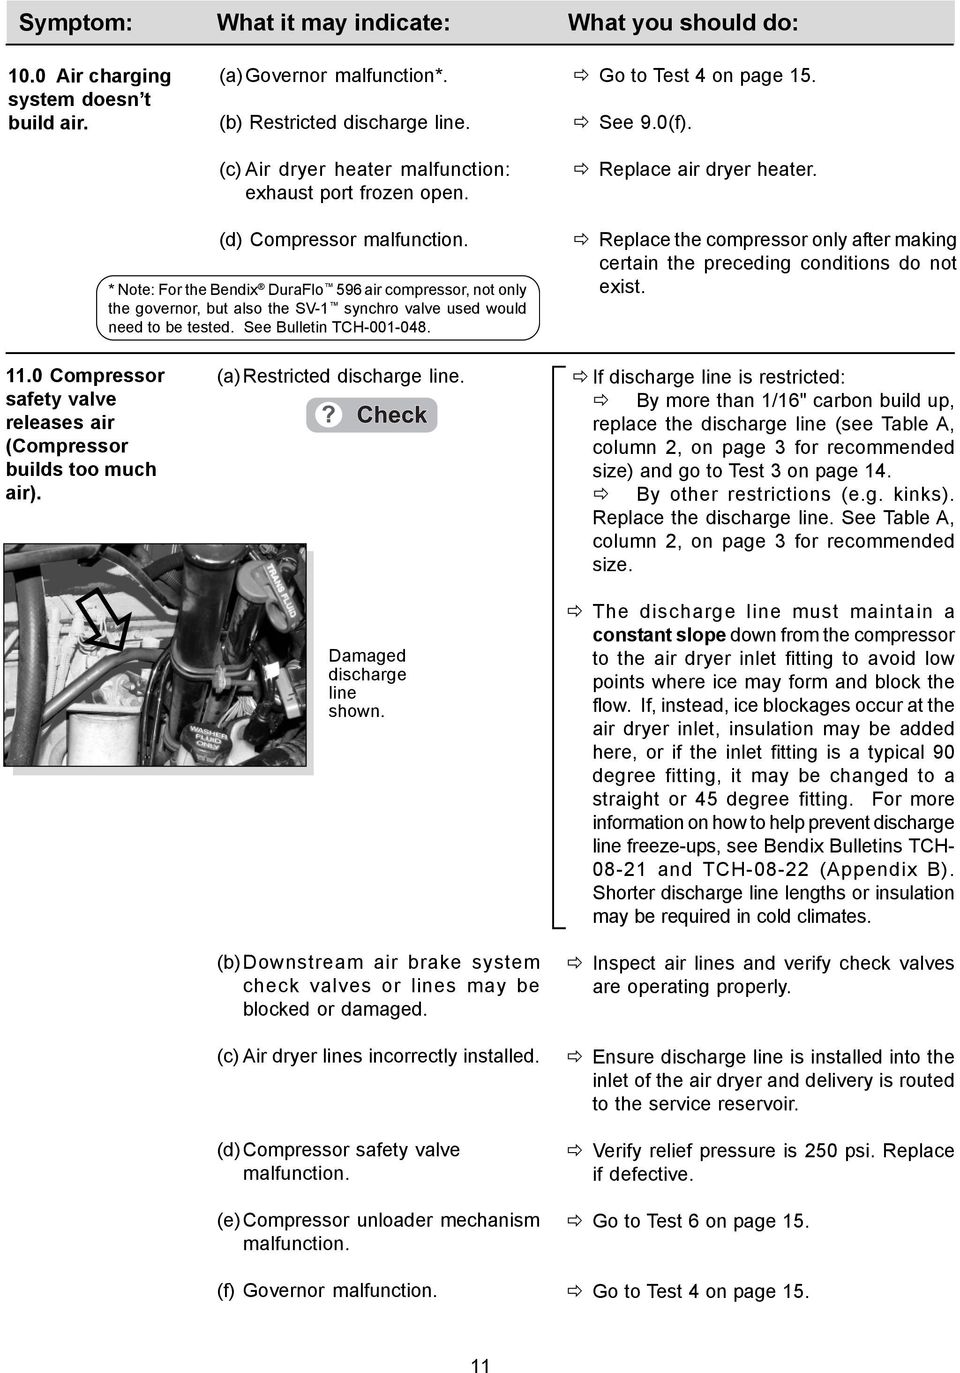 Advanced Troubleshooting Guide for Air Brake Compressors * - PDF